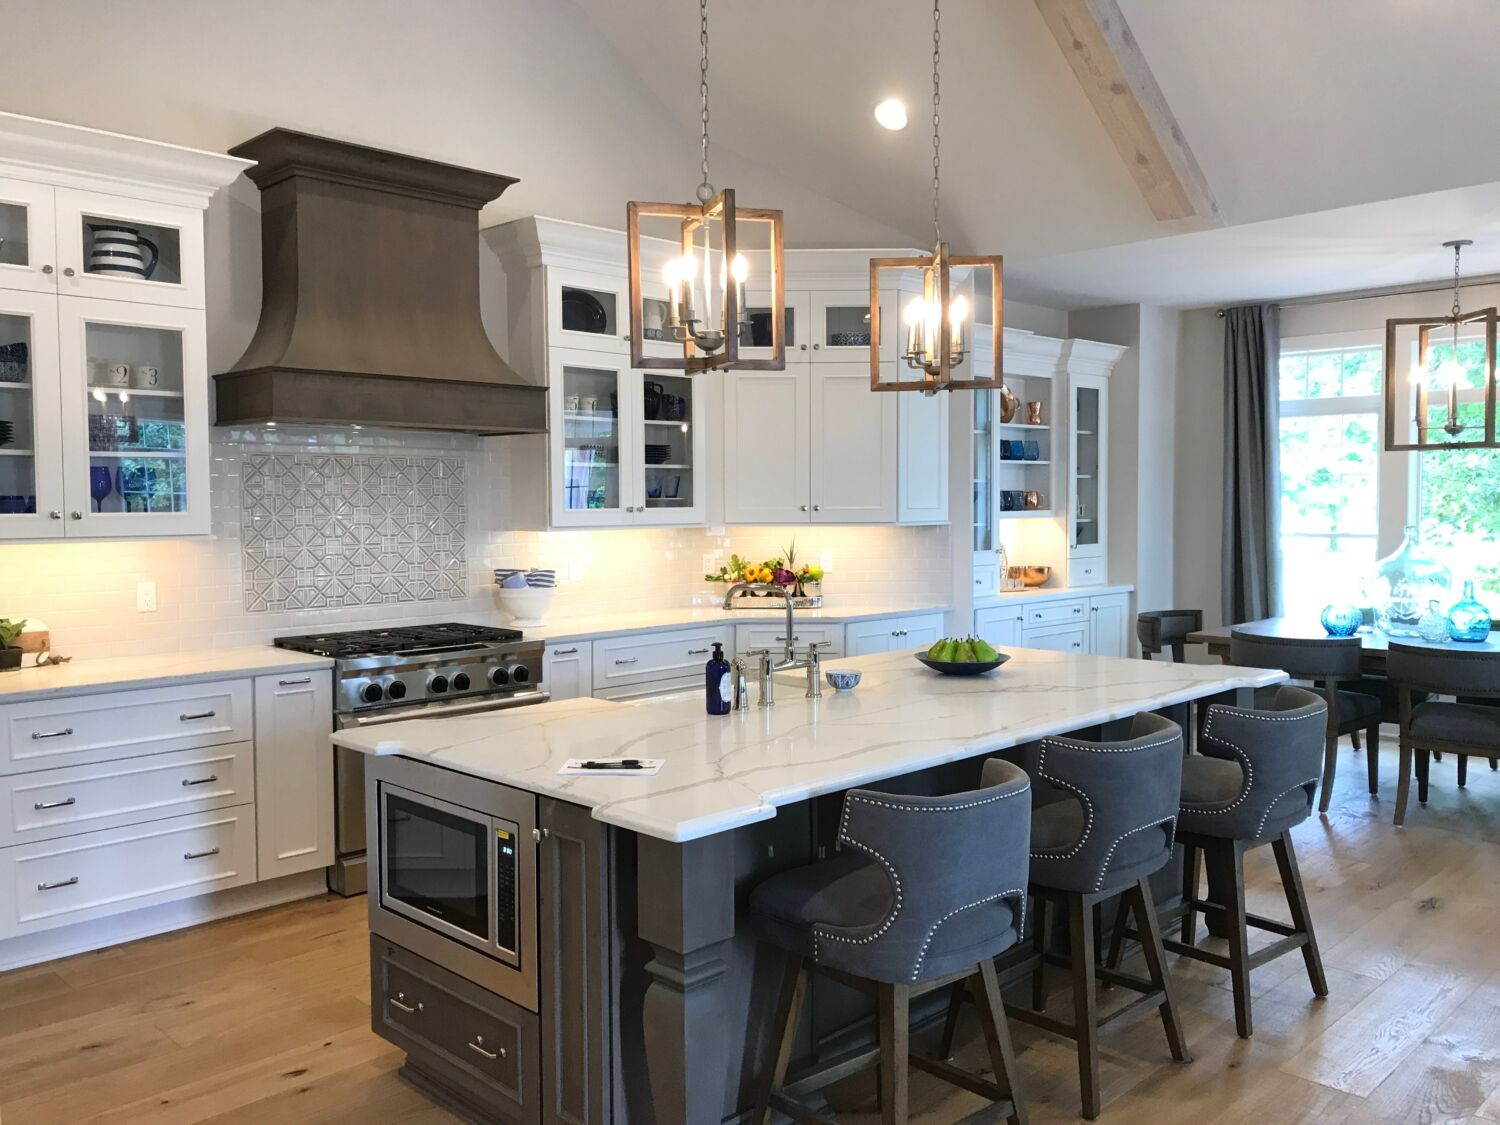 Meme_Hill_Amie_Freling_Raymour_Flanigan_counter_stool_white_kitchen_hamptons_chic_interior_design_Kitchen_Copper_rustic_modern_gorgeous_stunning